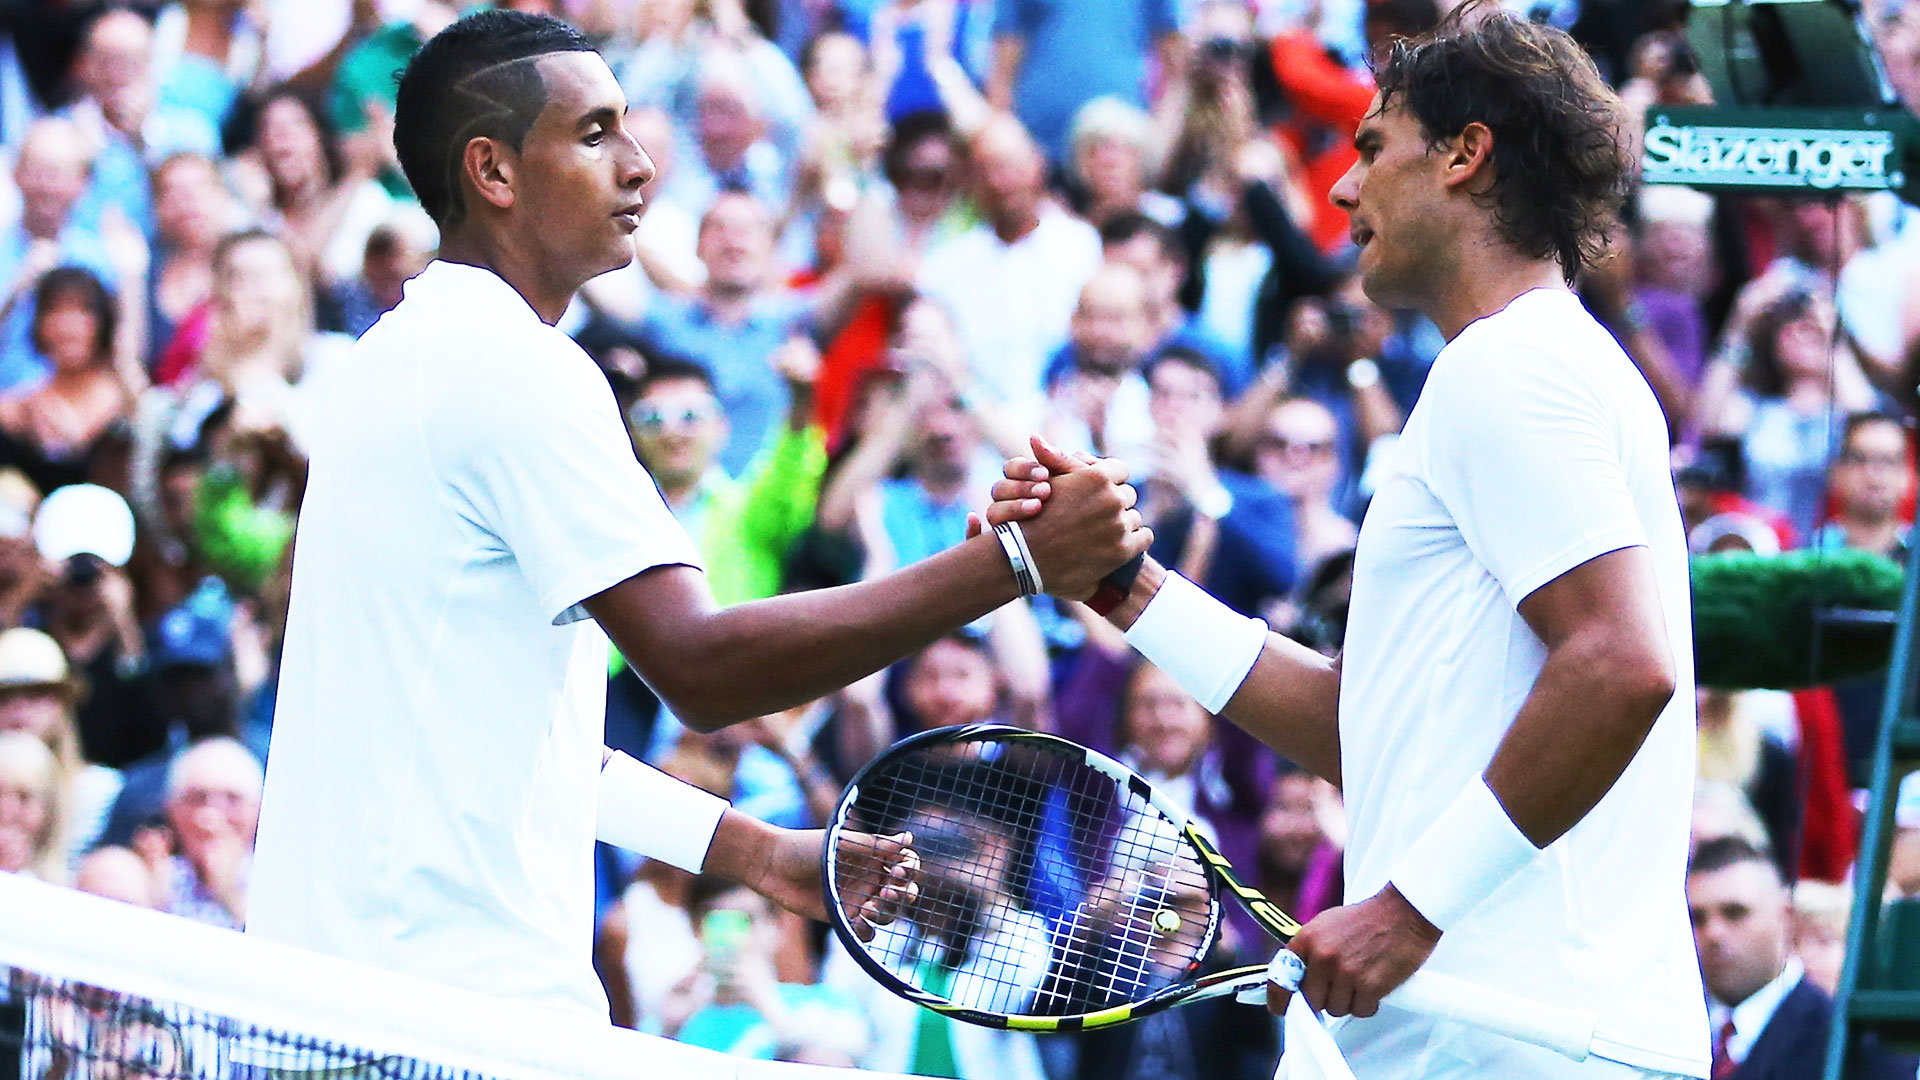 <a href='https://www.atptour.com/en/players/nick-kyrgios/ke17/overview'>Nick Kyrgios</a> and <a href='https://www.atptour.com/en/players/rafael-nadal/n409/overview'>Rafael Nadal</a> at <a href='https://www.atptour.com/en/tournaments/wimbledon/540/overview'>Wimbledon</a> 2014